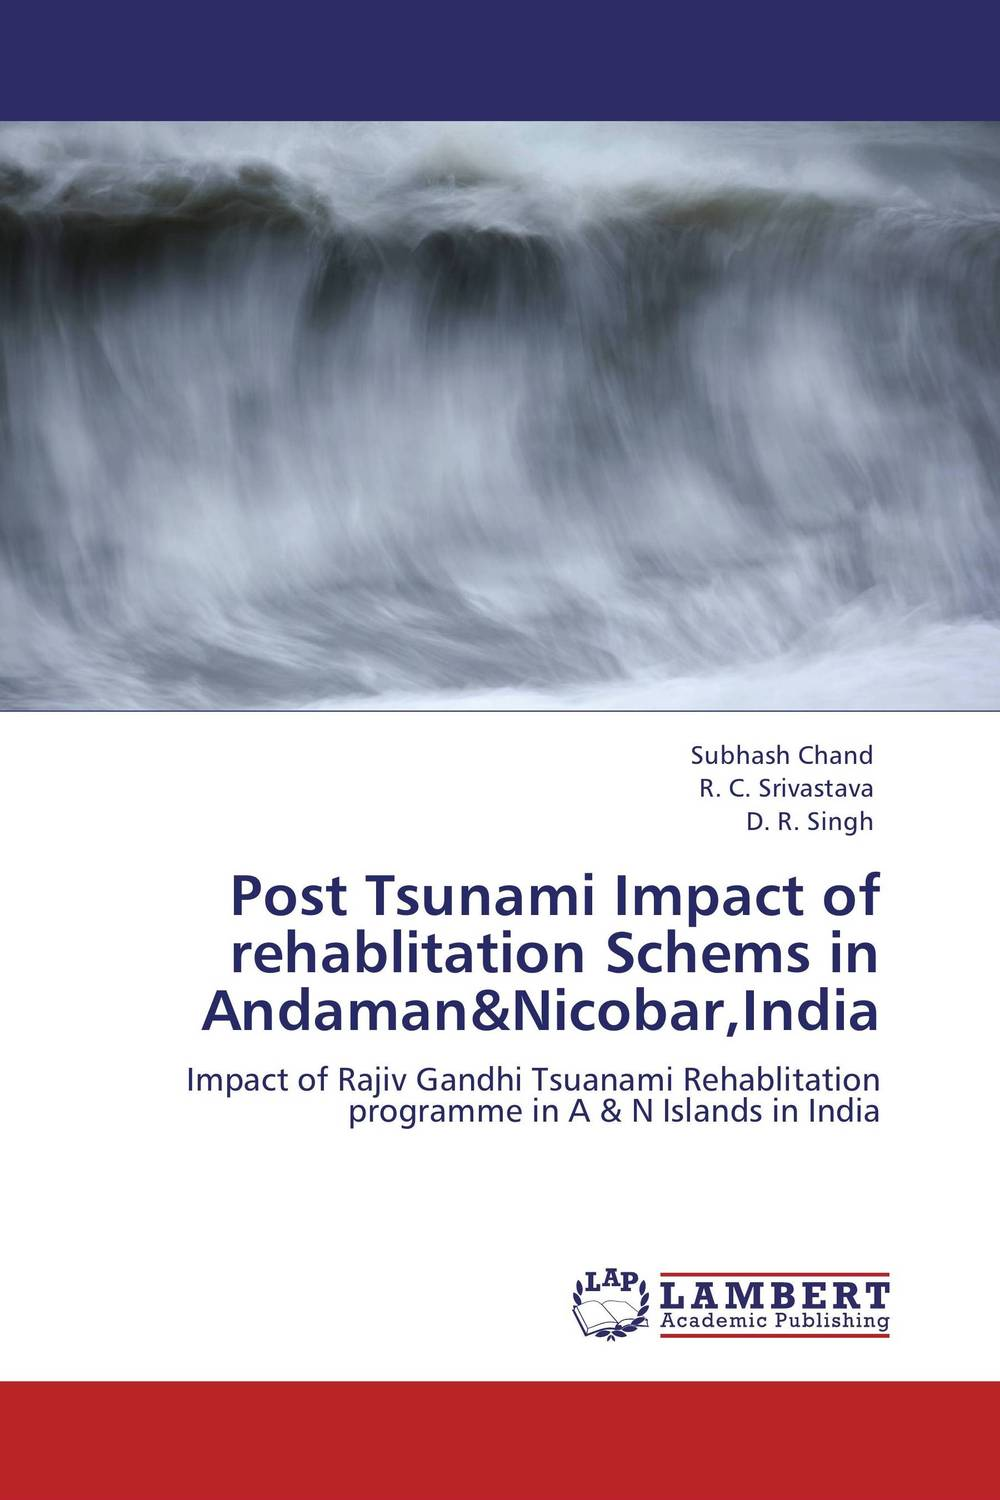 Post Tsunami Impact of rehablitation Schems in Andaman&Nicobar,India